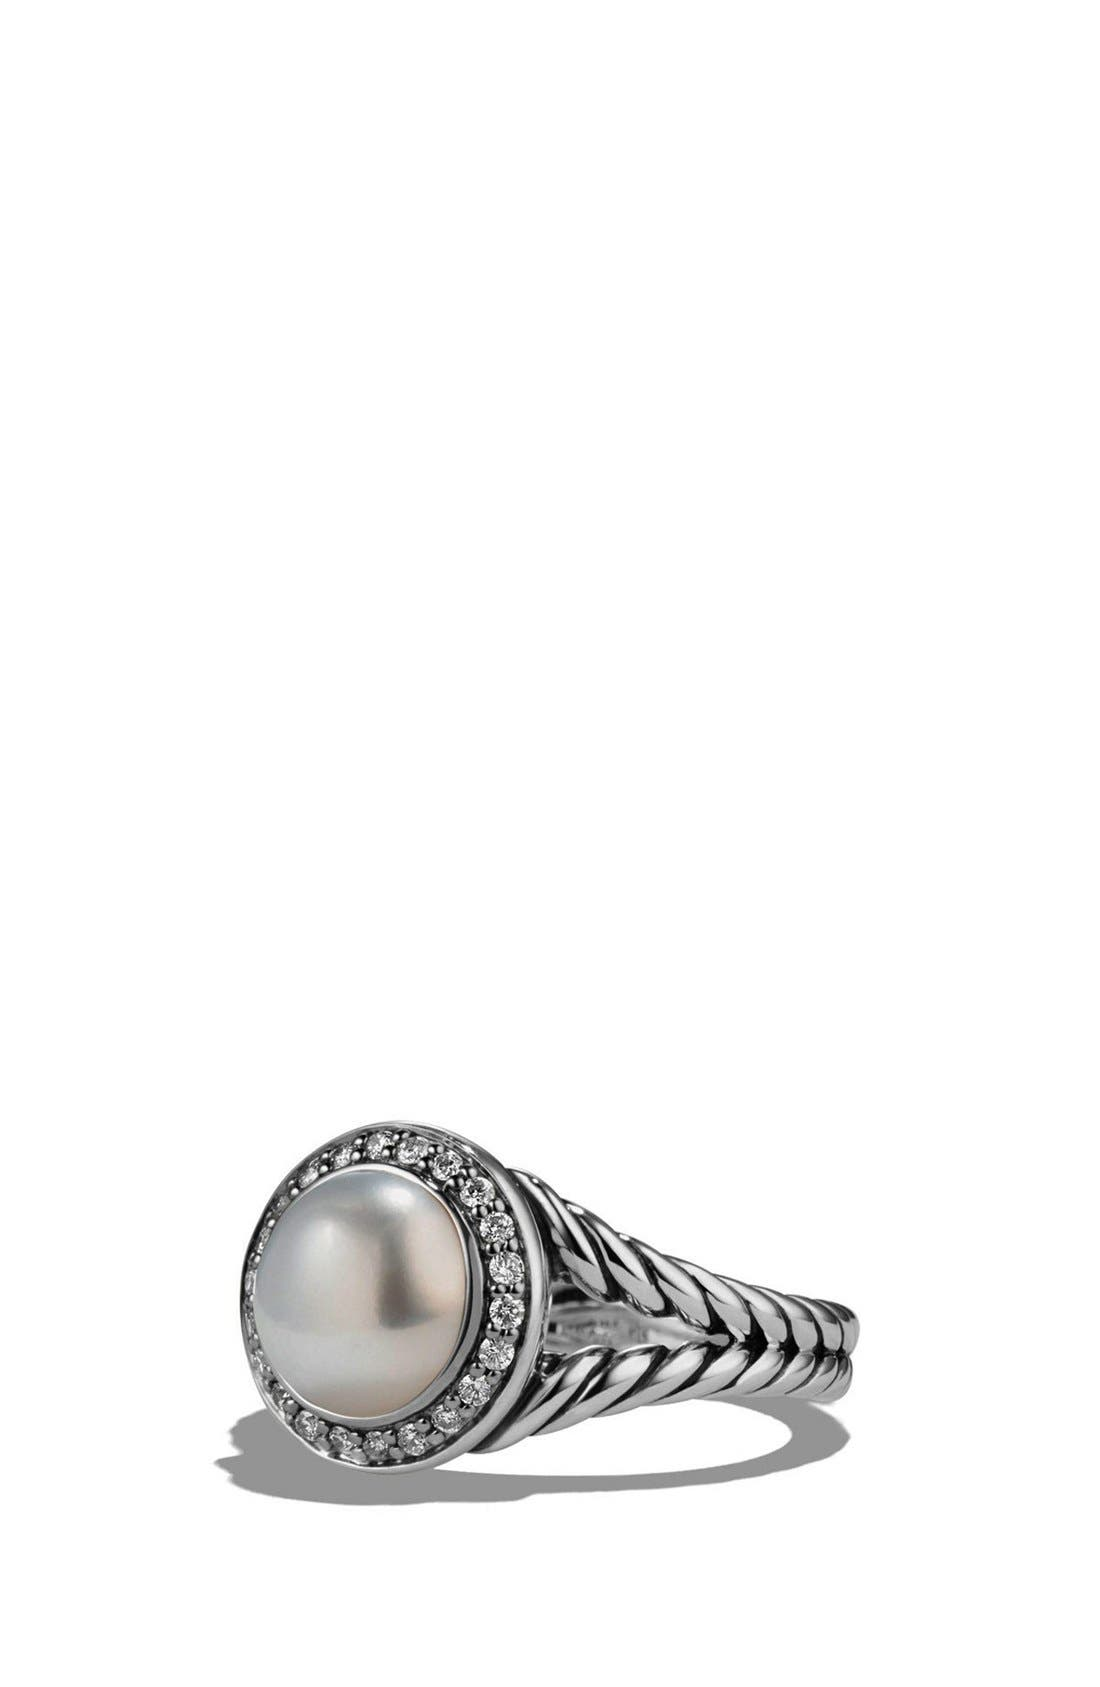 'Cerise' Ring with Pearl and Diamonds,                         Main,                         color, Silver/ Pearl